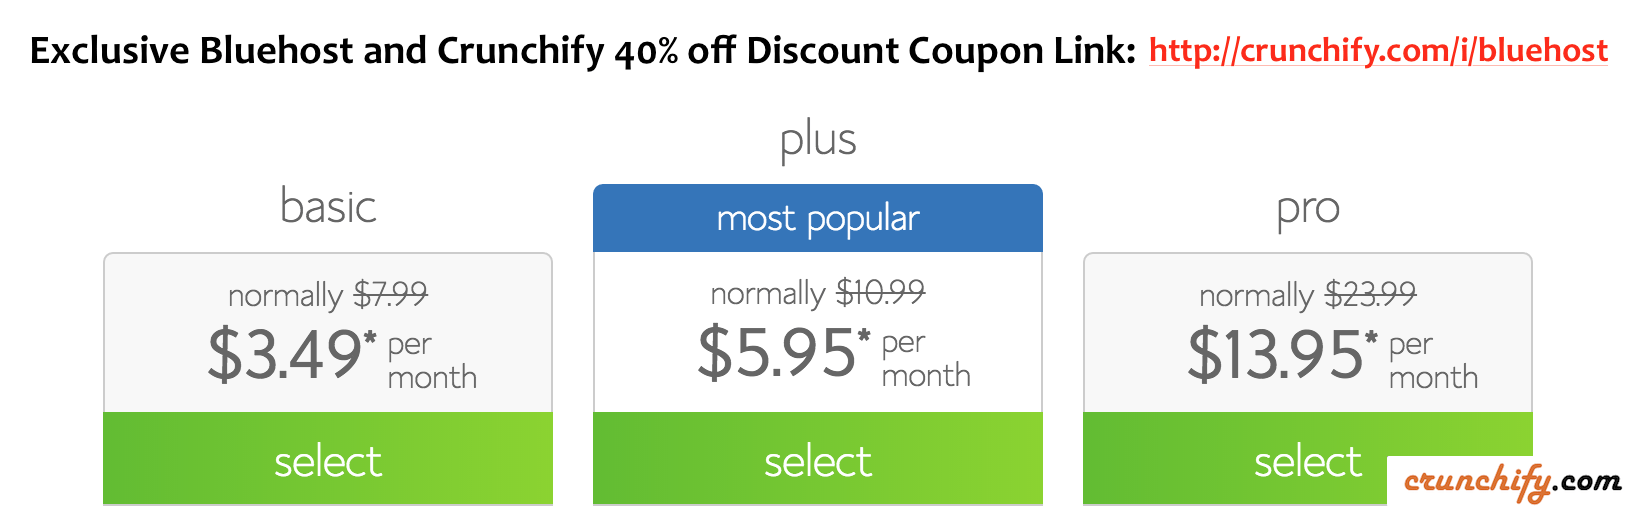 Exclusive Bluehost and Crunchify 40% off Discount Coupon Link